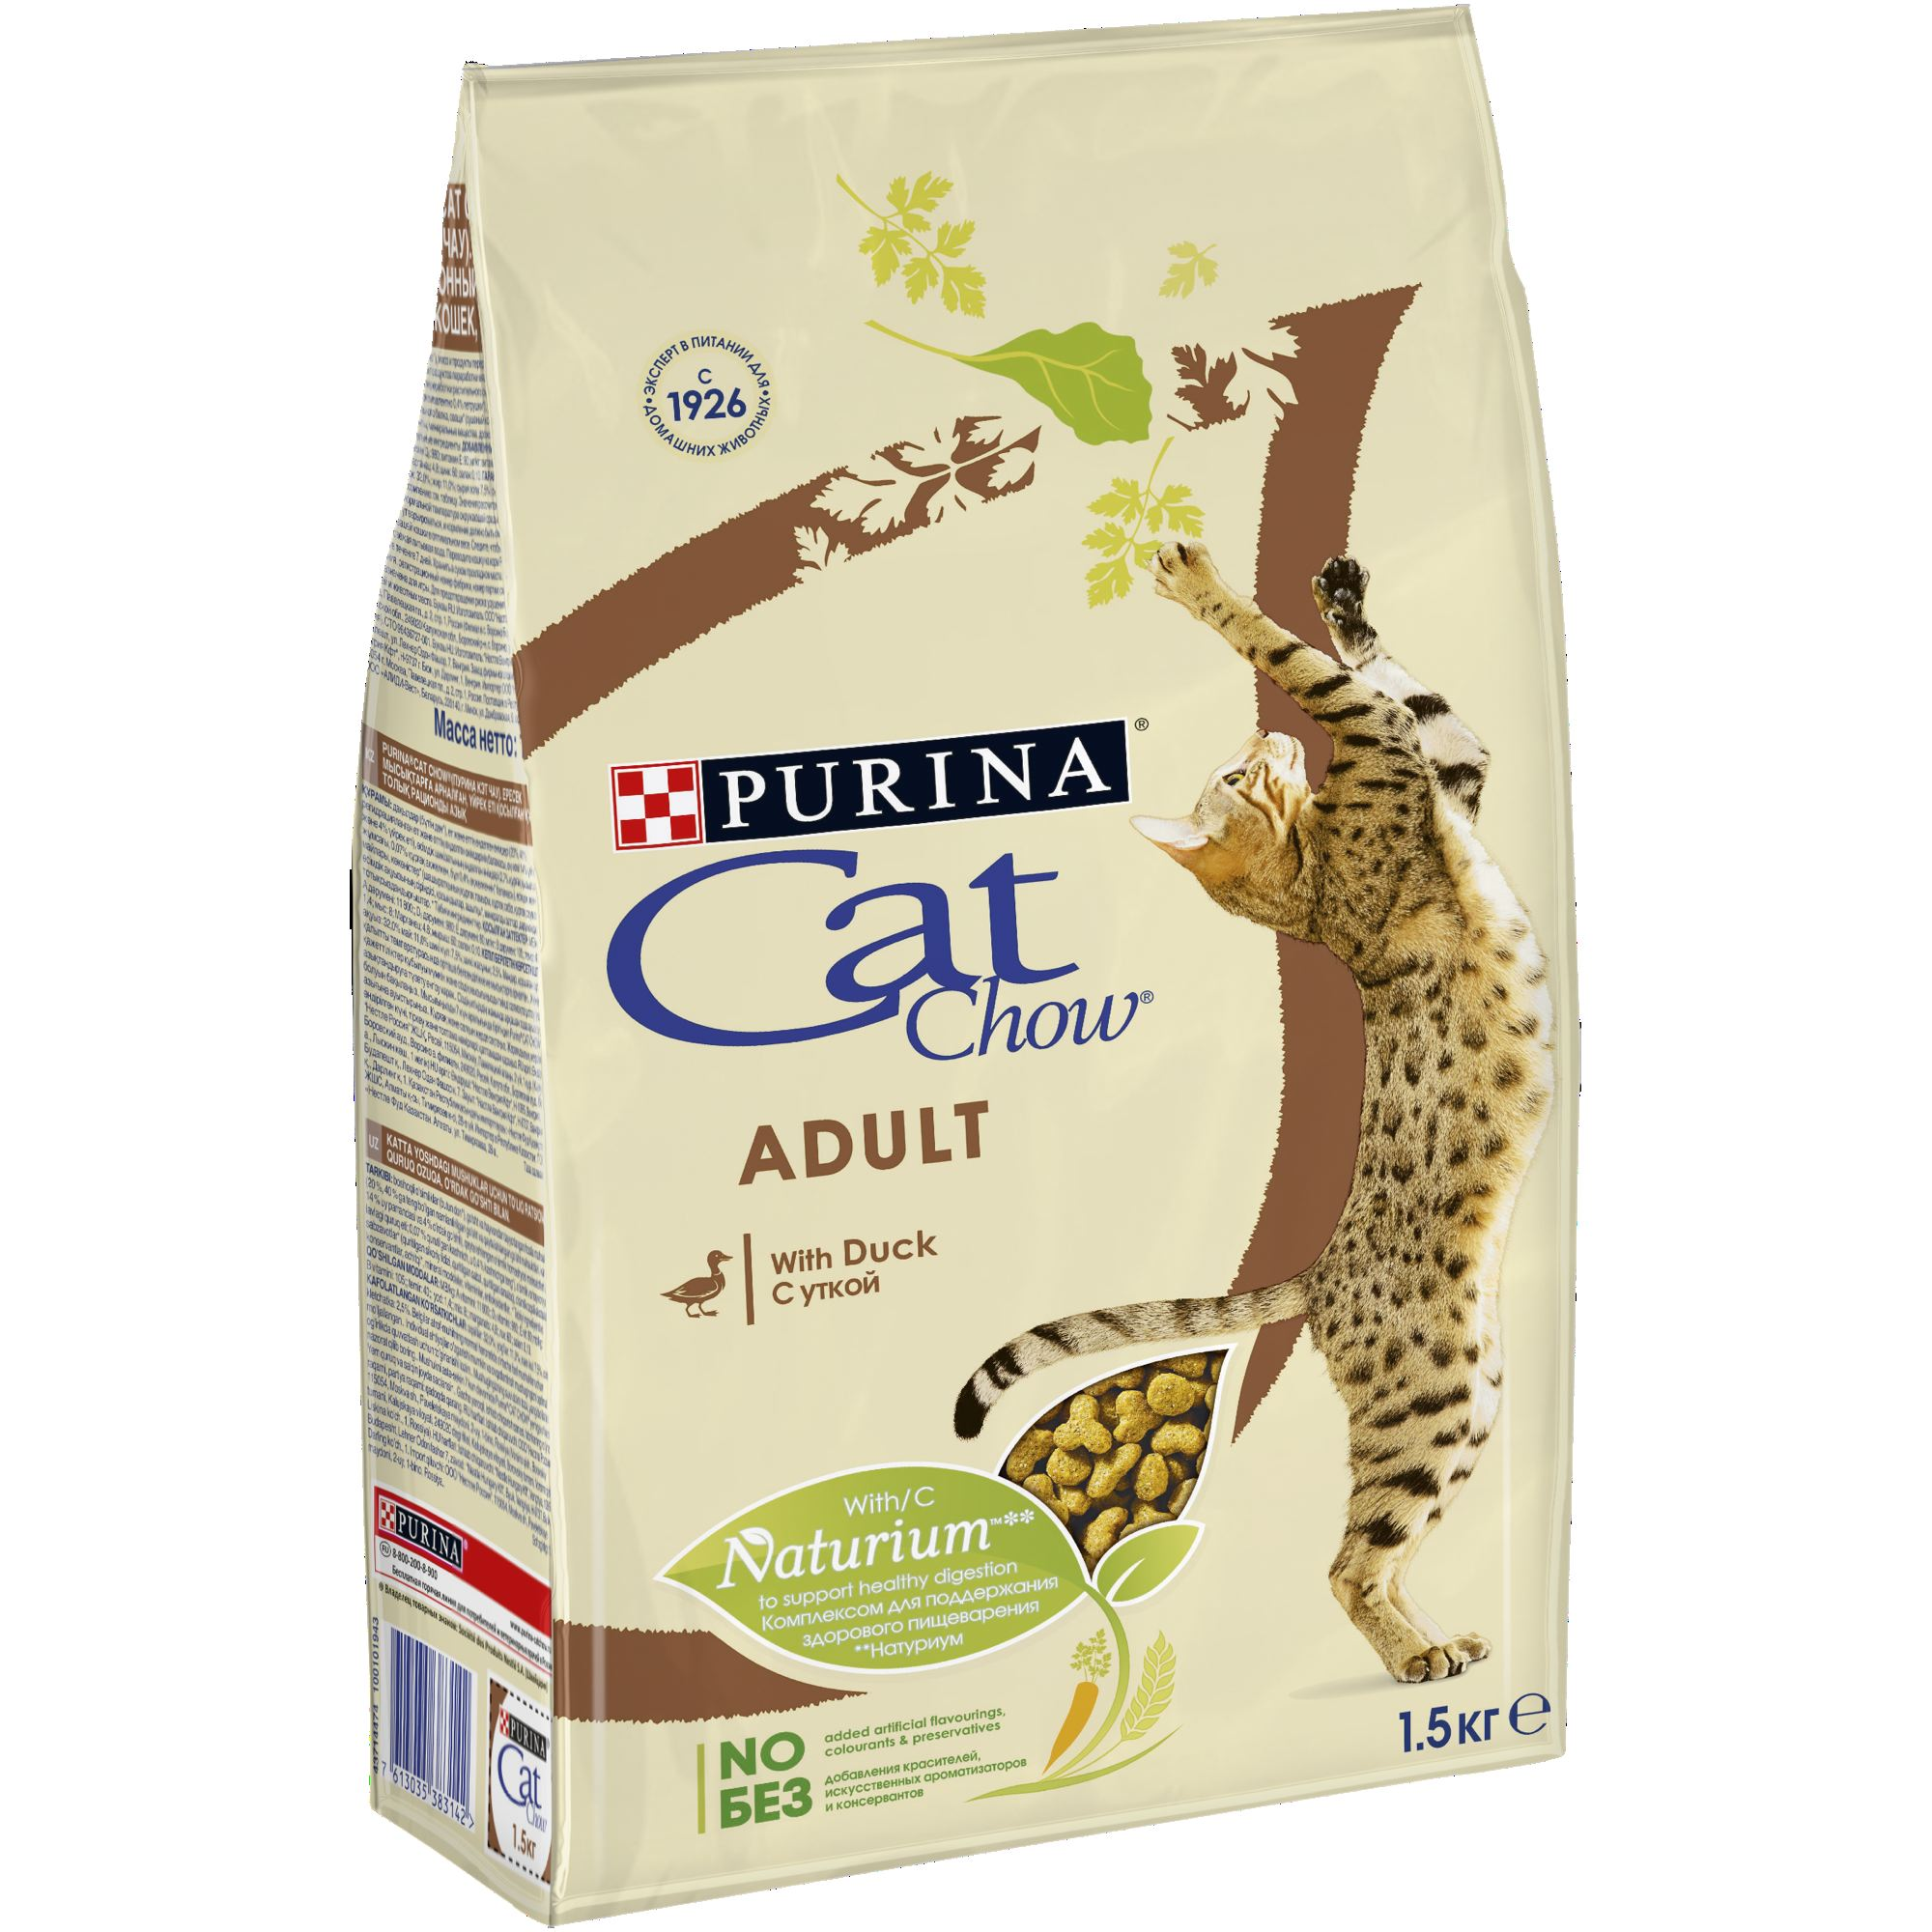 Cat Chow dry food for adult cats with a duck, Package, 1.5 kg